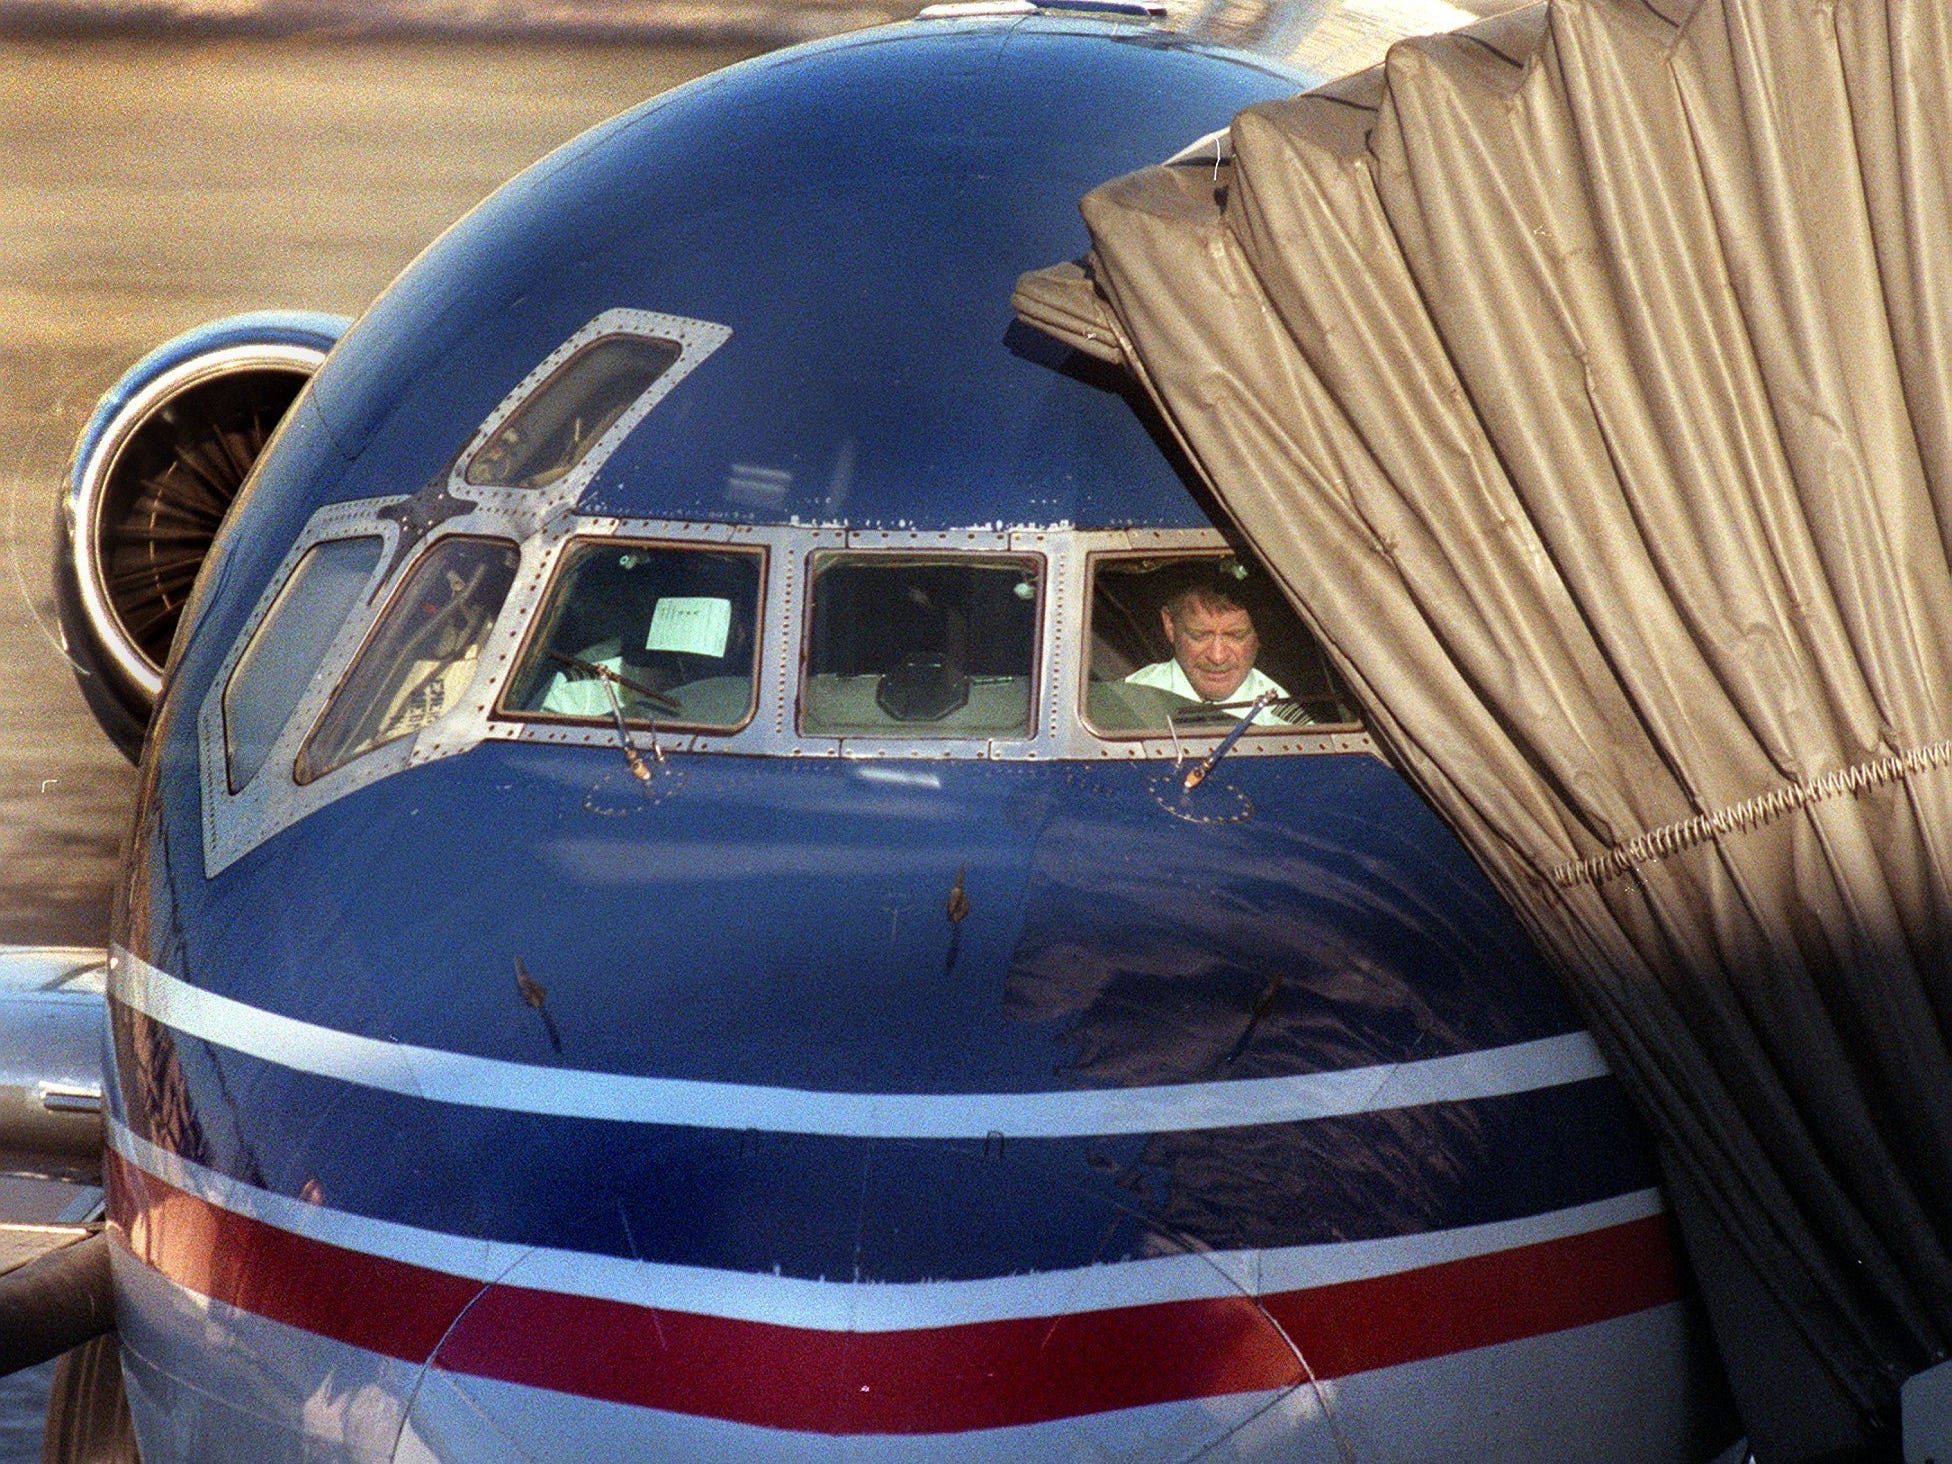 A Midwest Express pilot bound for Hartford goes through his preflight checklist at Mitchell International Saturday morning, February 12, 2000. Last minute talks between Midwest Express and the pilots resulted in a tentative agreement averting a strike.